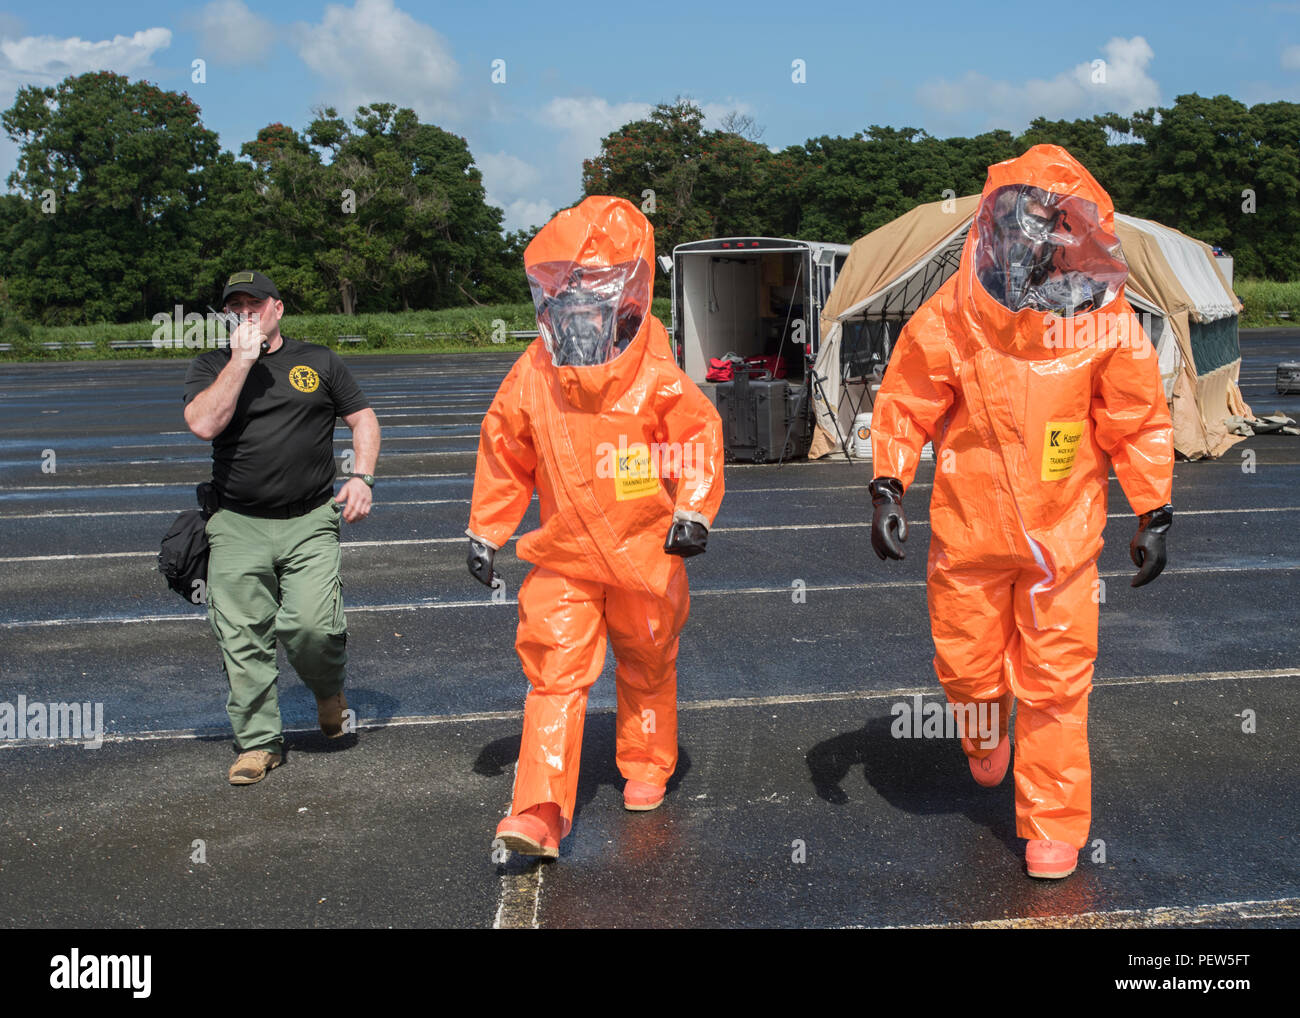 U.S. Staff Sgt. Rusty Greeno, survey team member, and Sgt. Dorian Quarmby, survey team member, 15th Civil Support Team, Vermont National Guard, walk toward the simulated hazardous area for a man-down drill during the unit's training proficiency evaluation at Roberto Clemente Stadium, Carolina, Puerto Rico, Jan. 26, 2016. The 15th CST is conducting the unit's 18-month training proficiency evaluation. (U.S. Army National Guard Photo by Staff Sgt. Nathan Rivard) - Stock Image